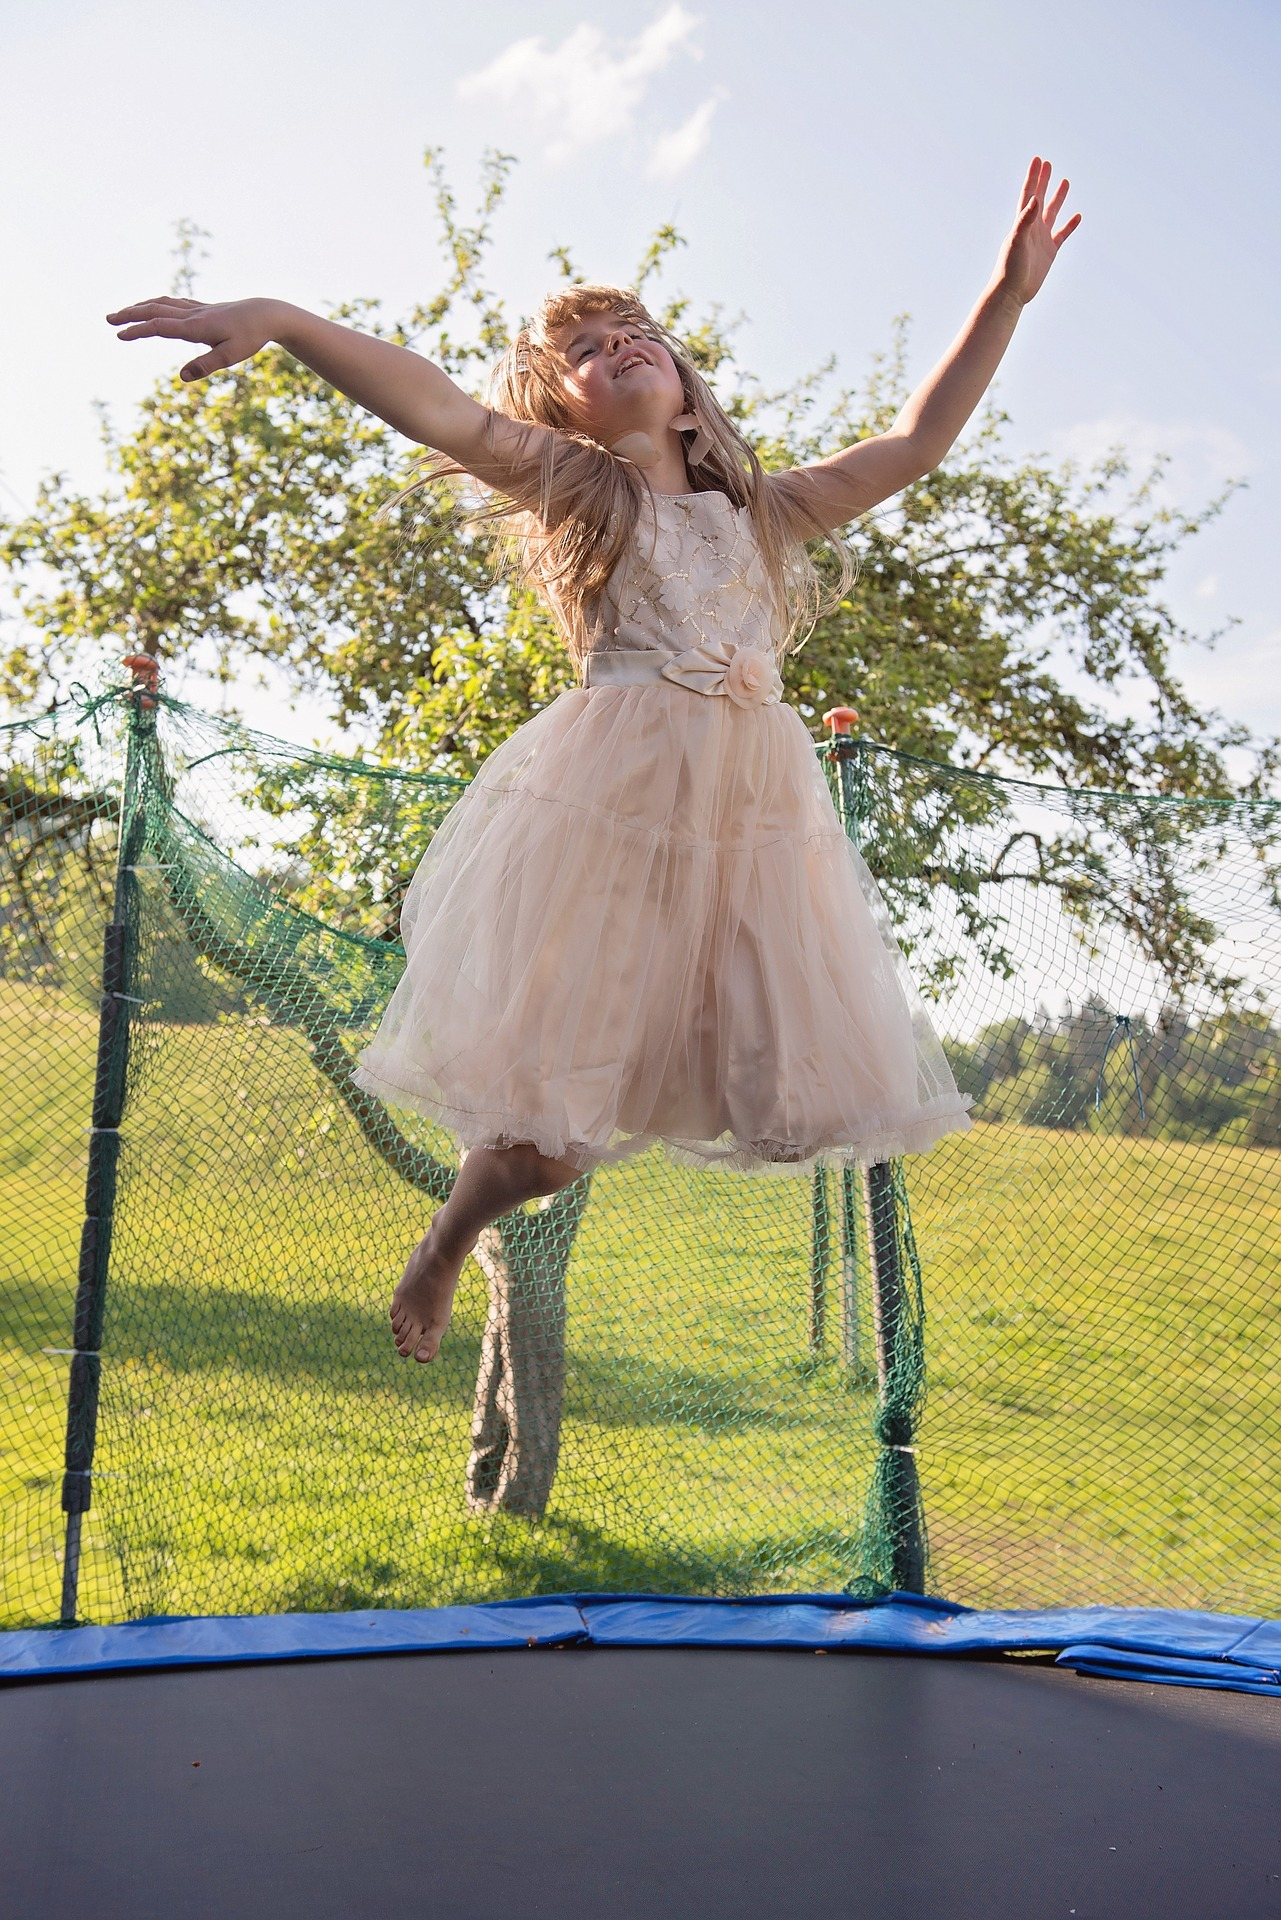 Little girl is flying after jumping the trampoline